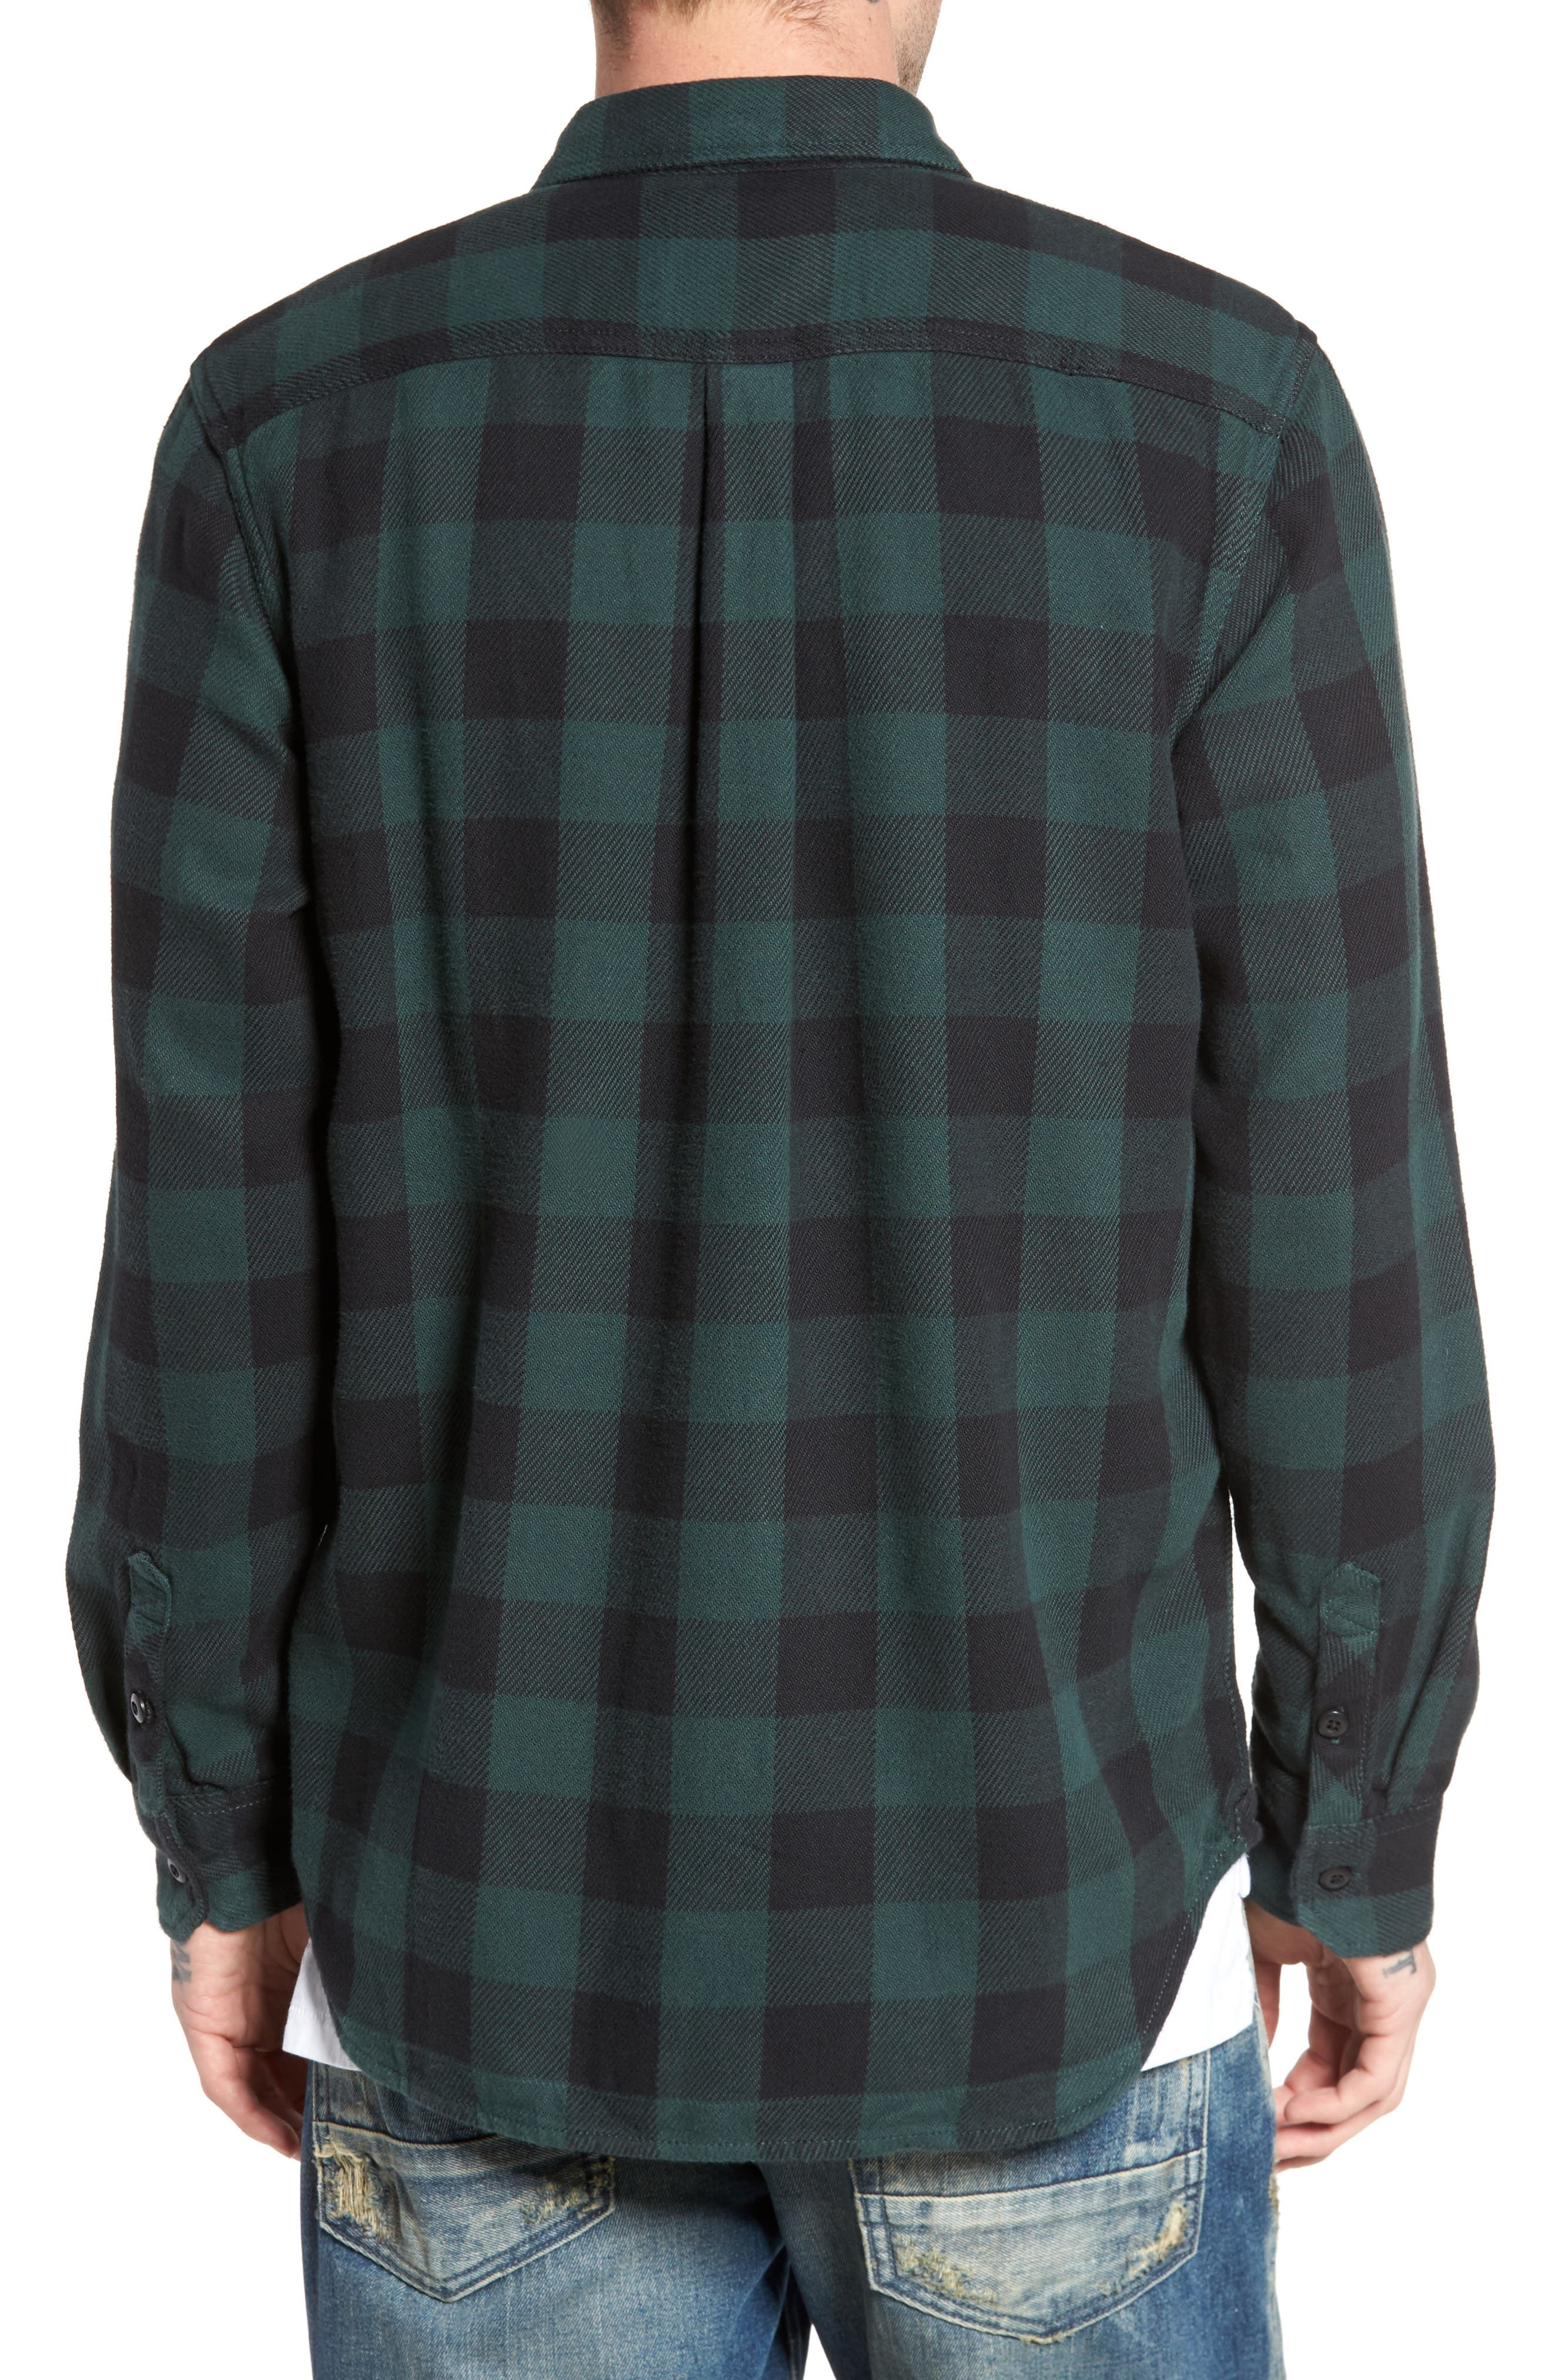 Wisner Plaid Shirt,                             Alternate thumbnail 2, color,                             001